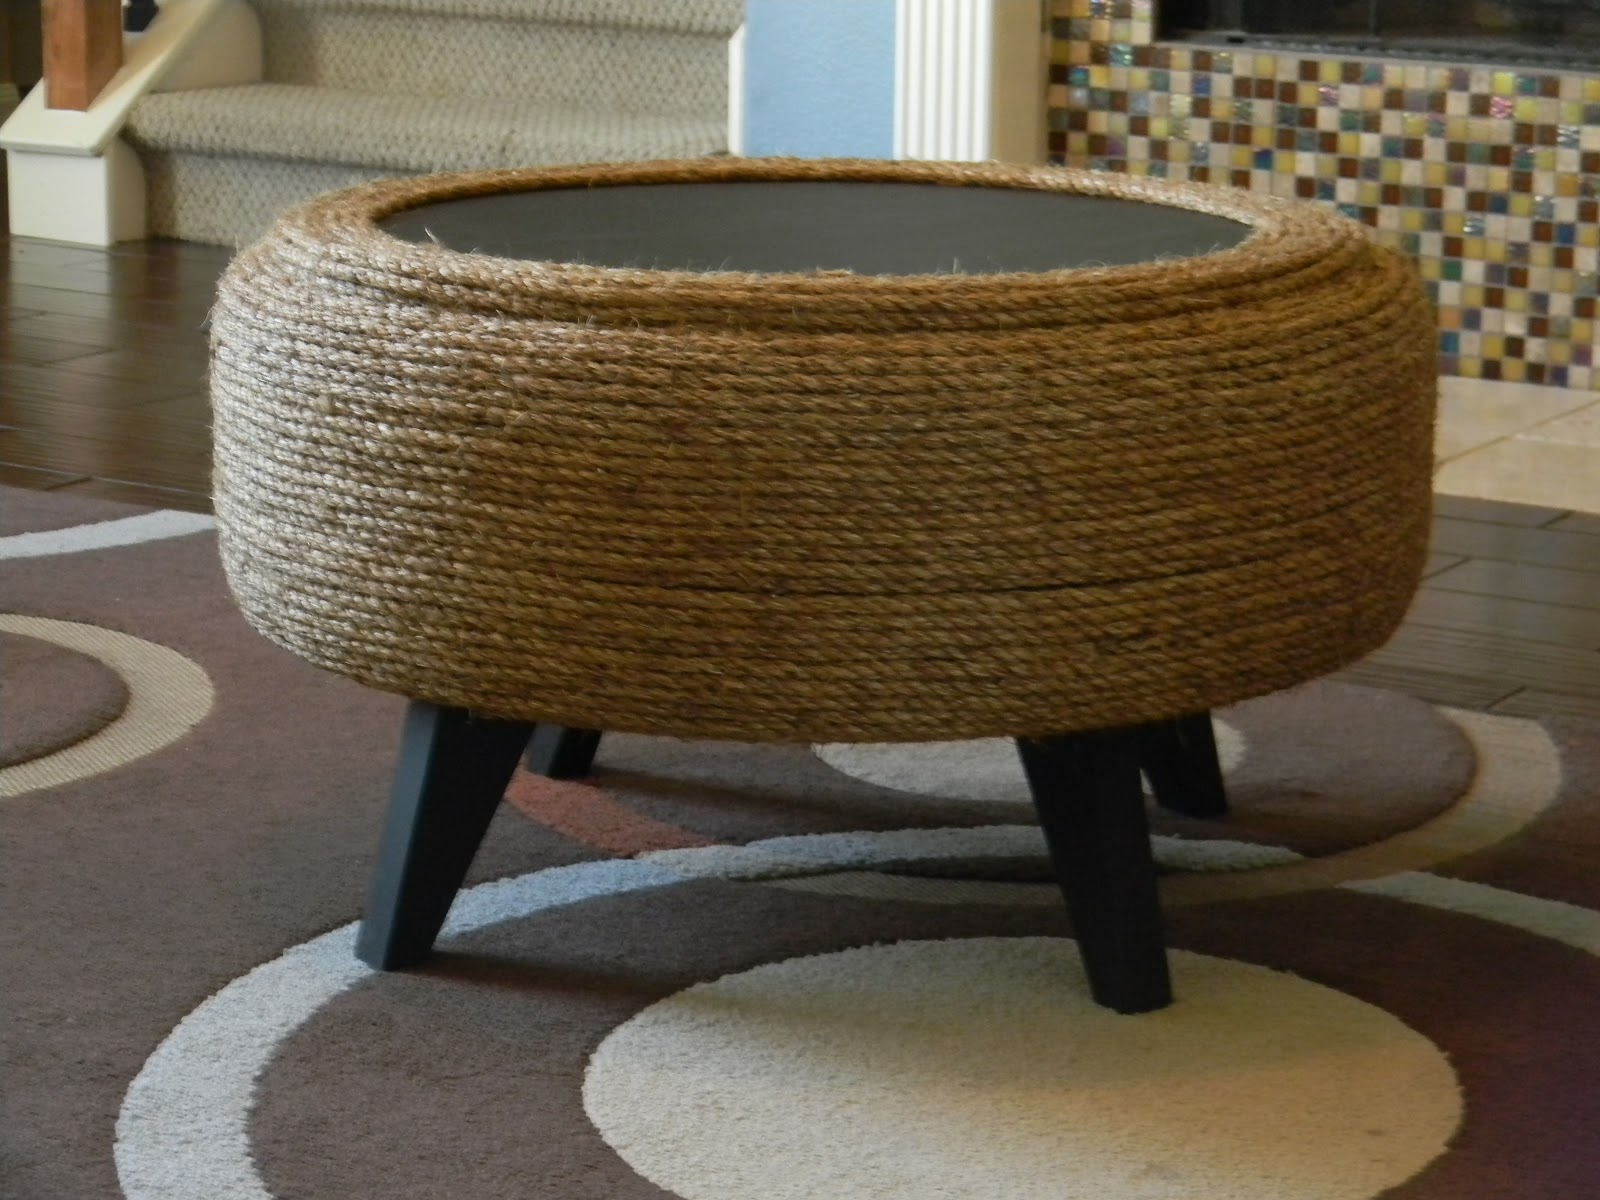 Ottoman out of a recycled tyre and some sisal rope